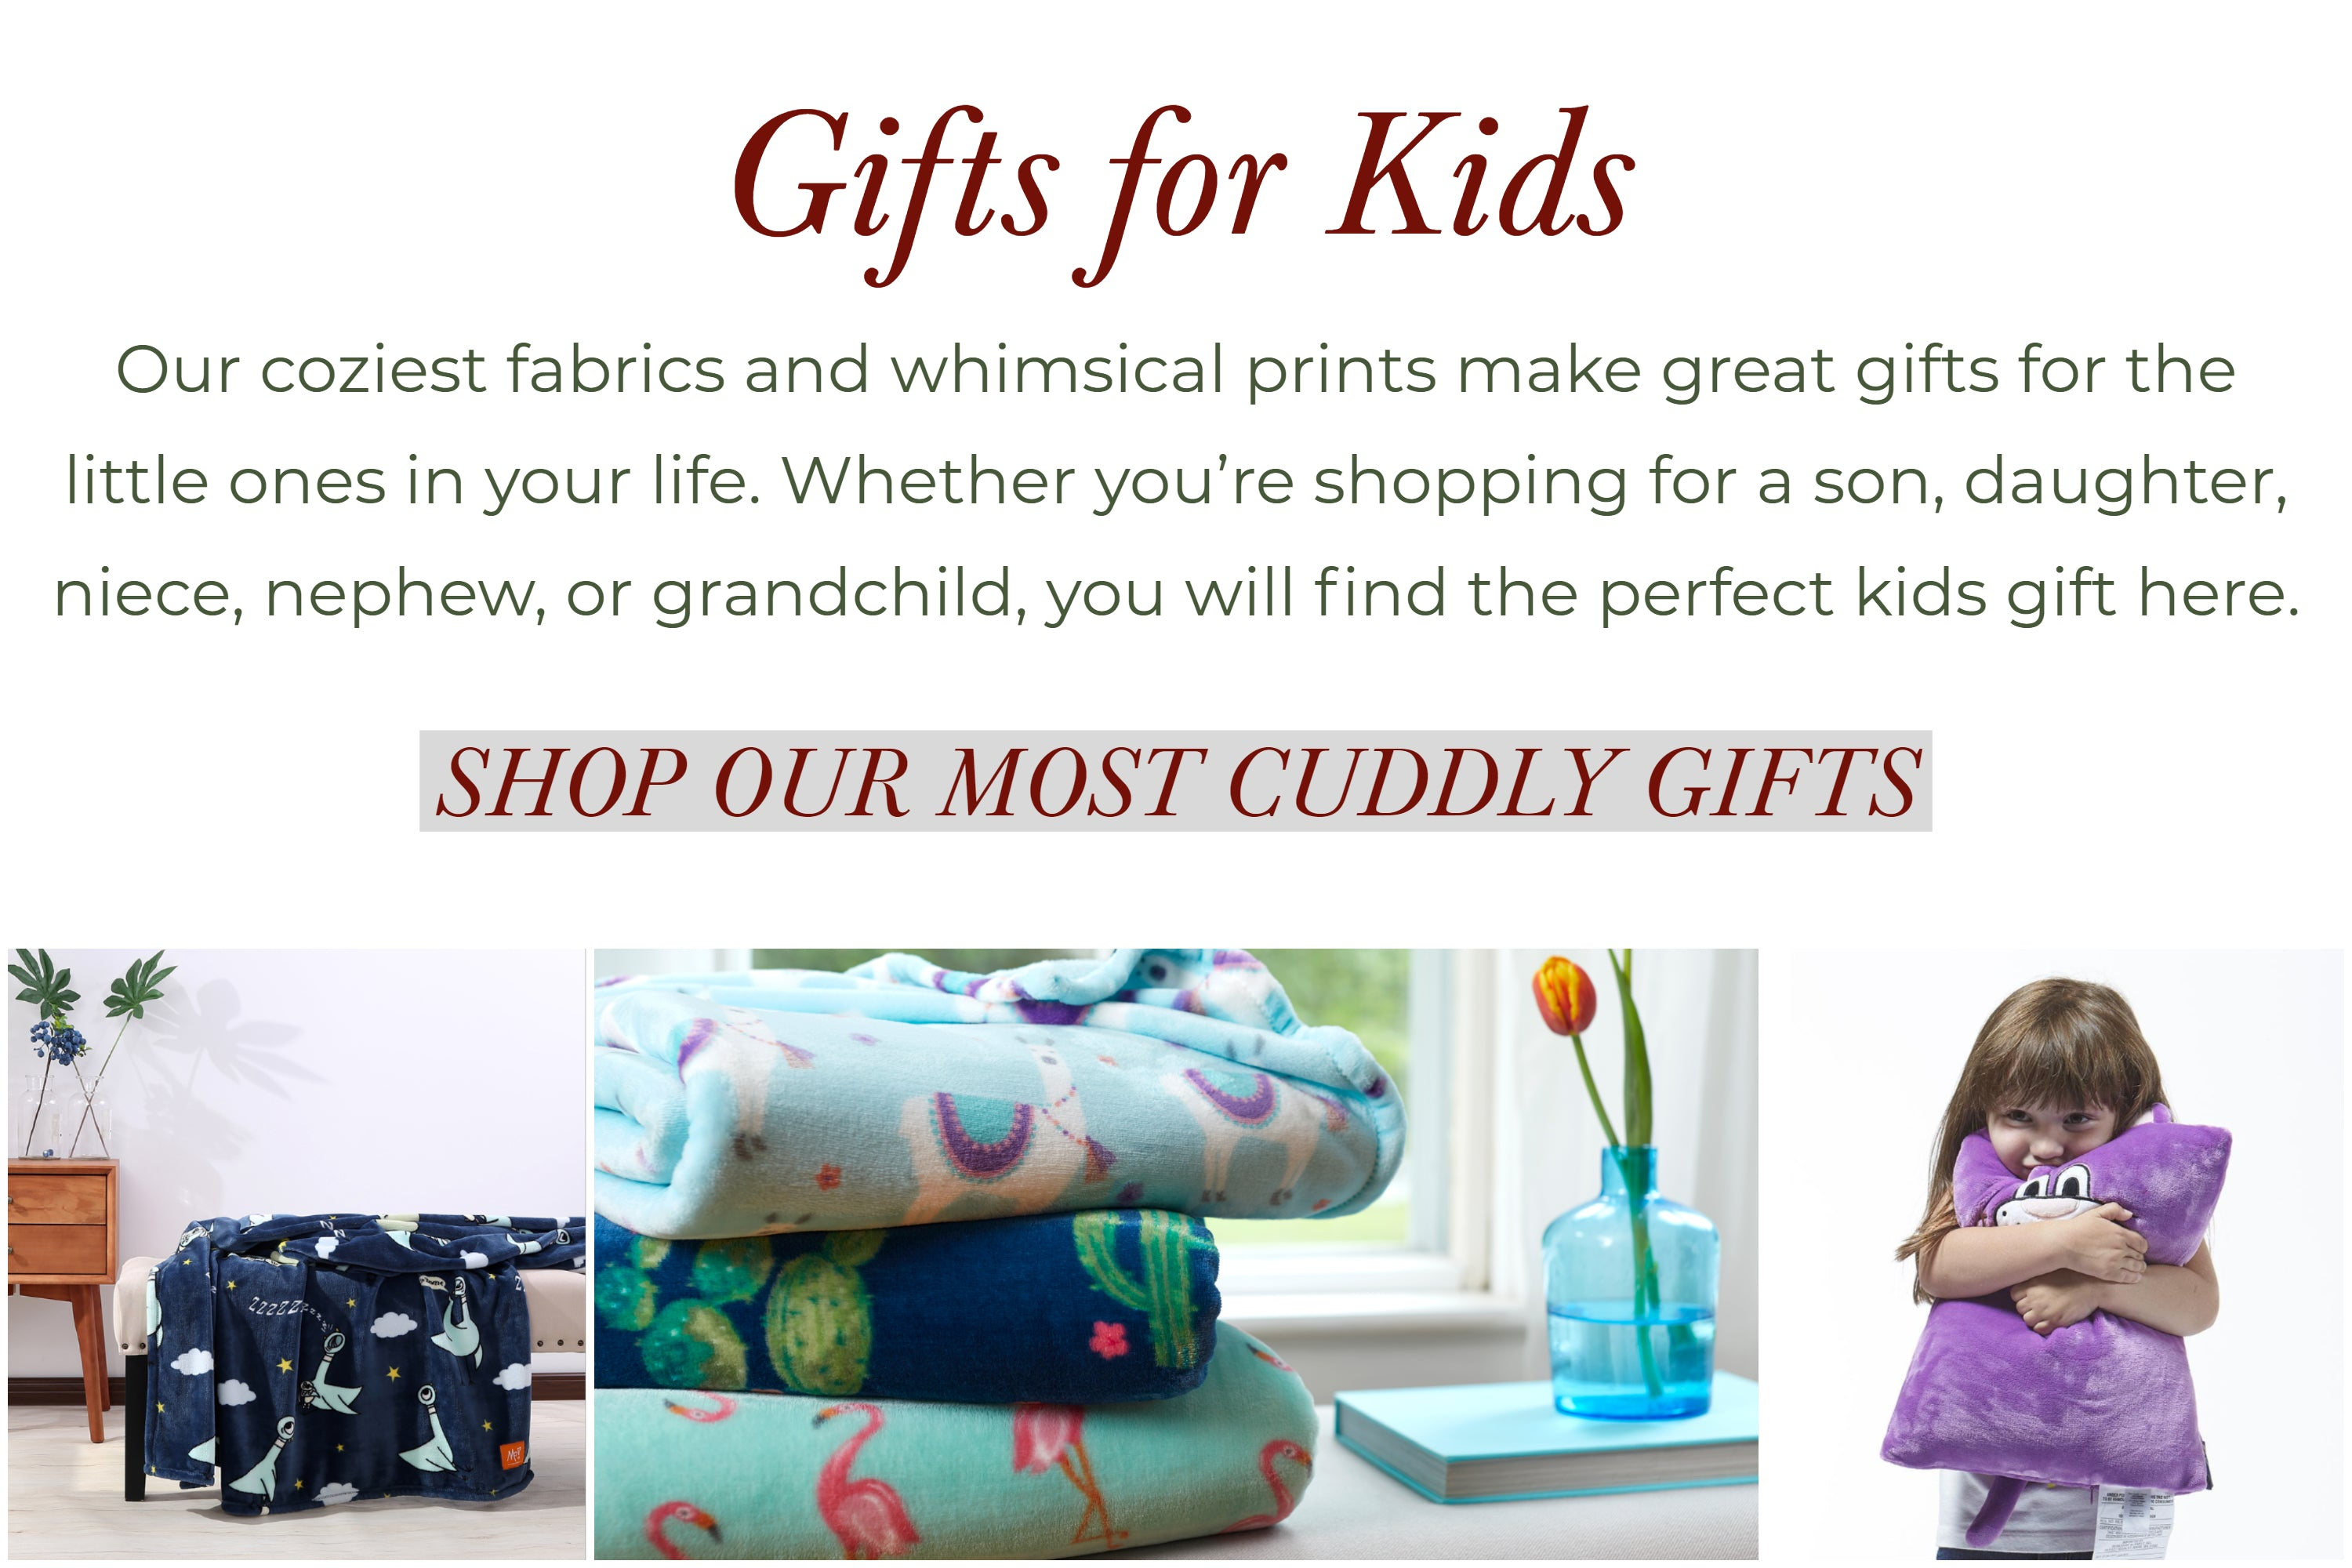 Gifts for kids. our coziest fabrics and whimsical prints make great gifts for the little ones in your life. Whether you're shopping for a son, daughter, niece, nephew, or grandchild, you will find the perfect kids gift here.